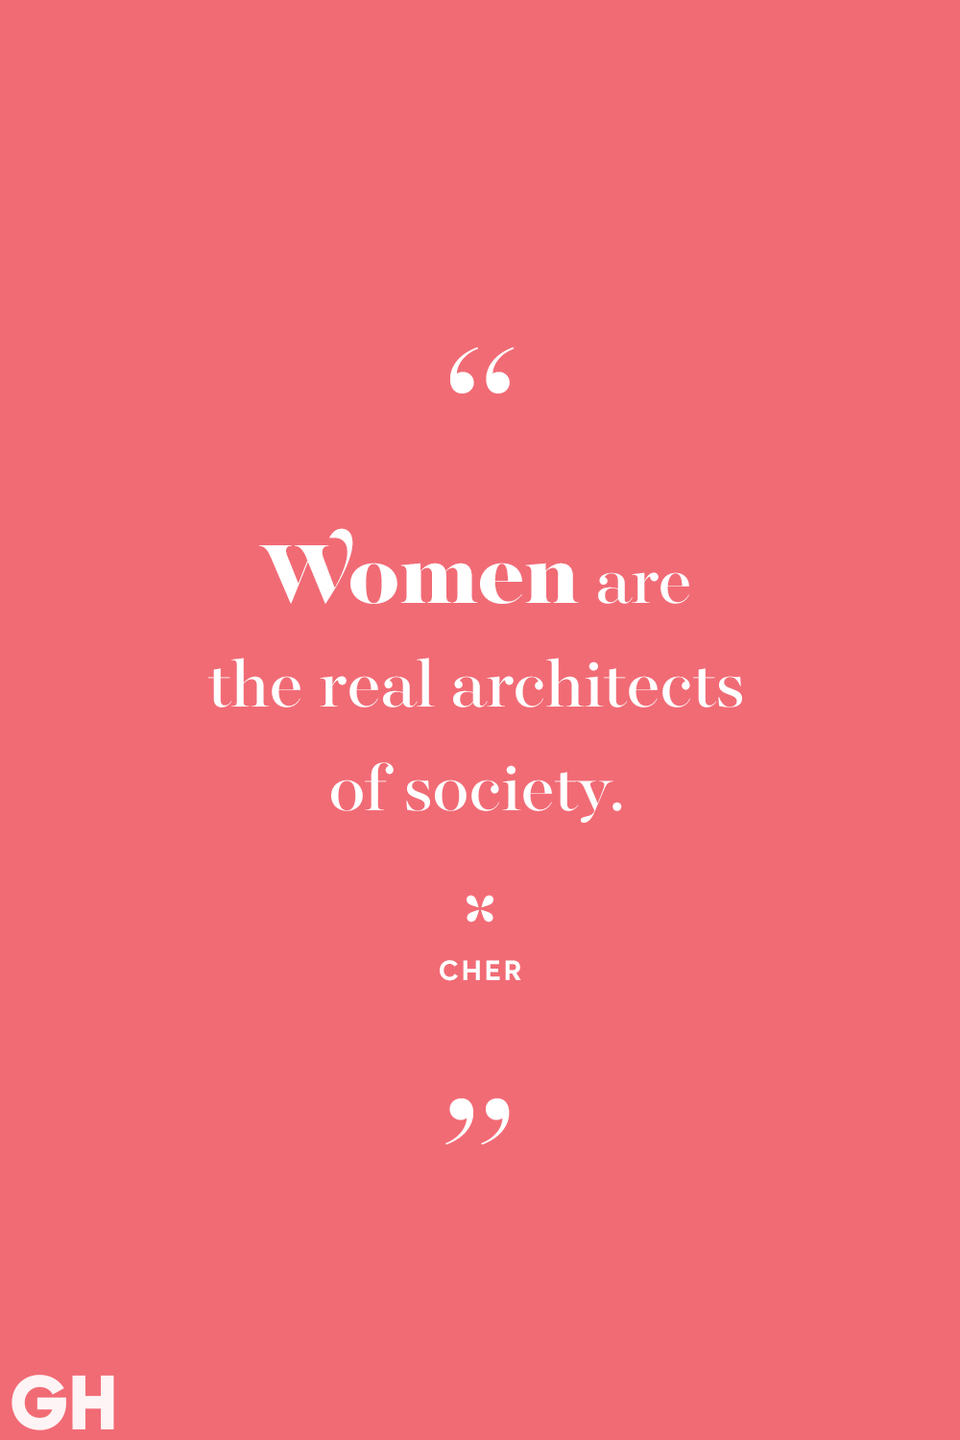 <p>Women are the real architects of society.</p>